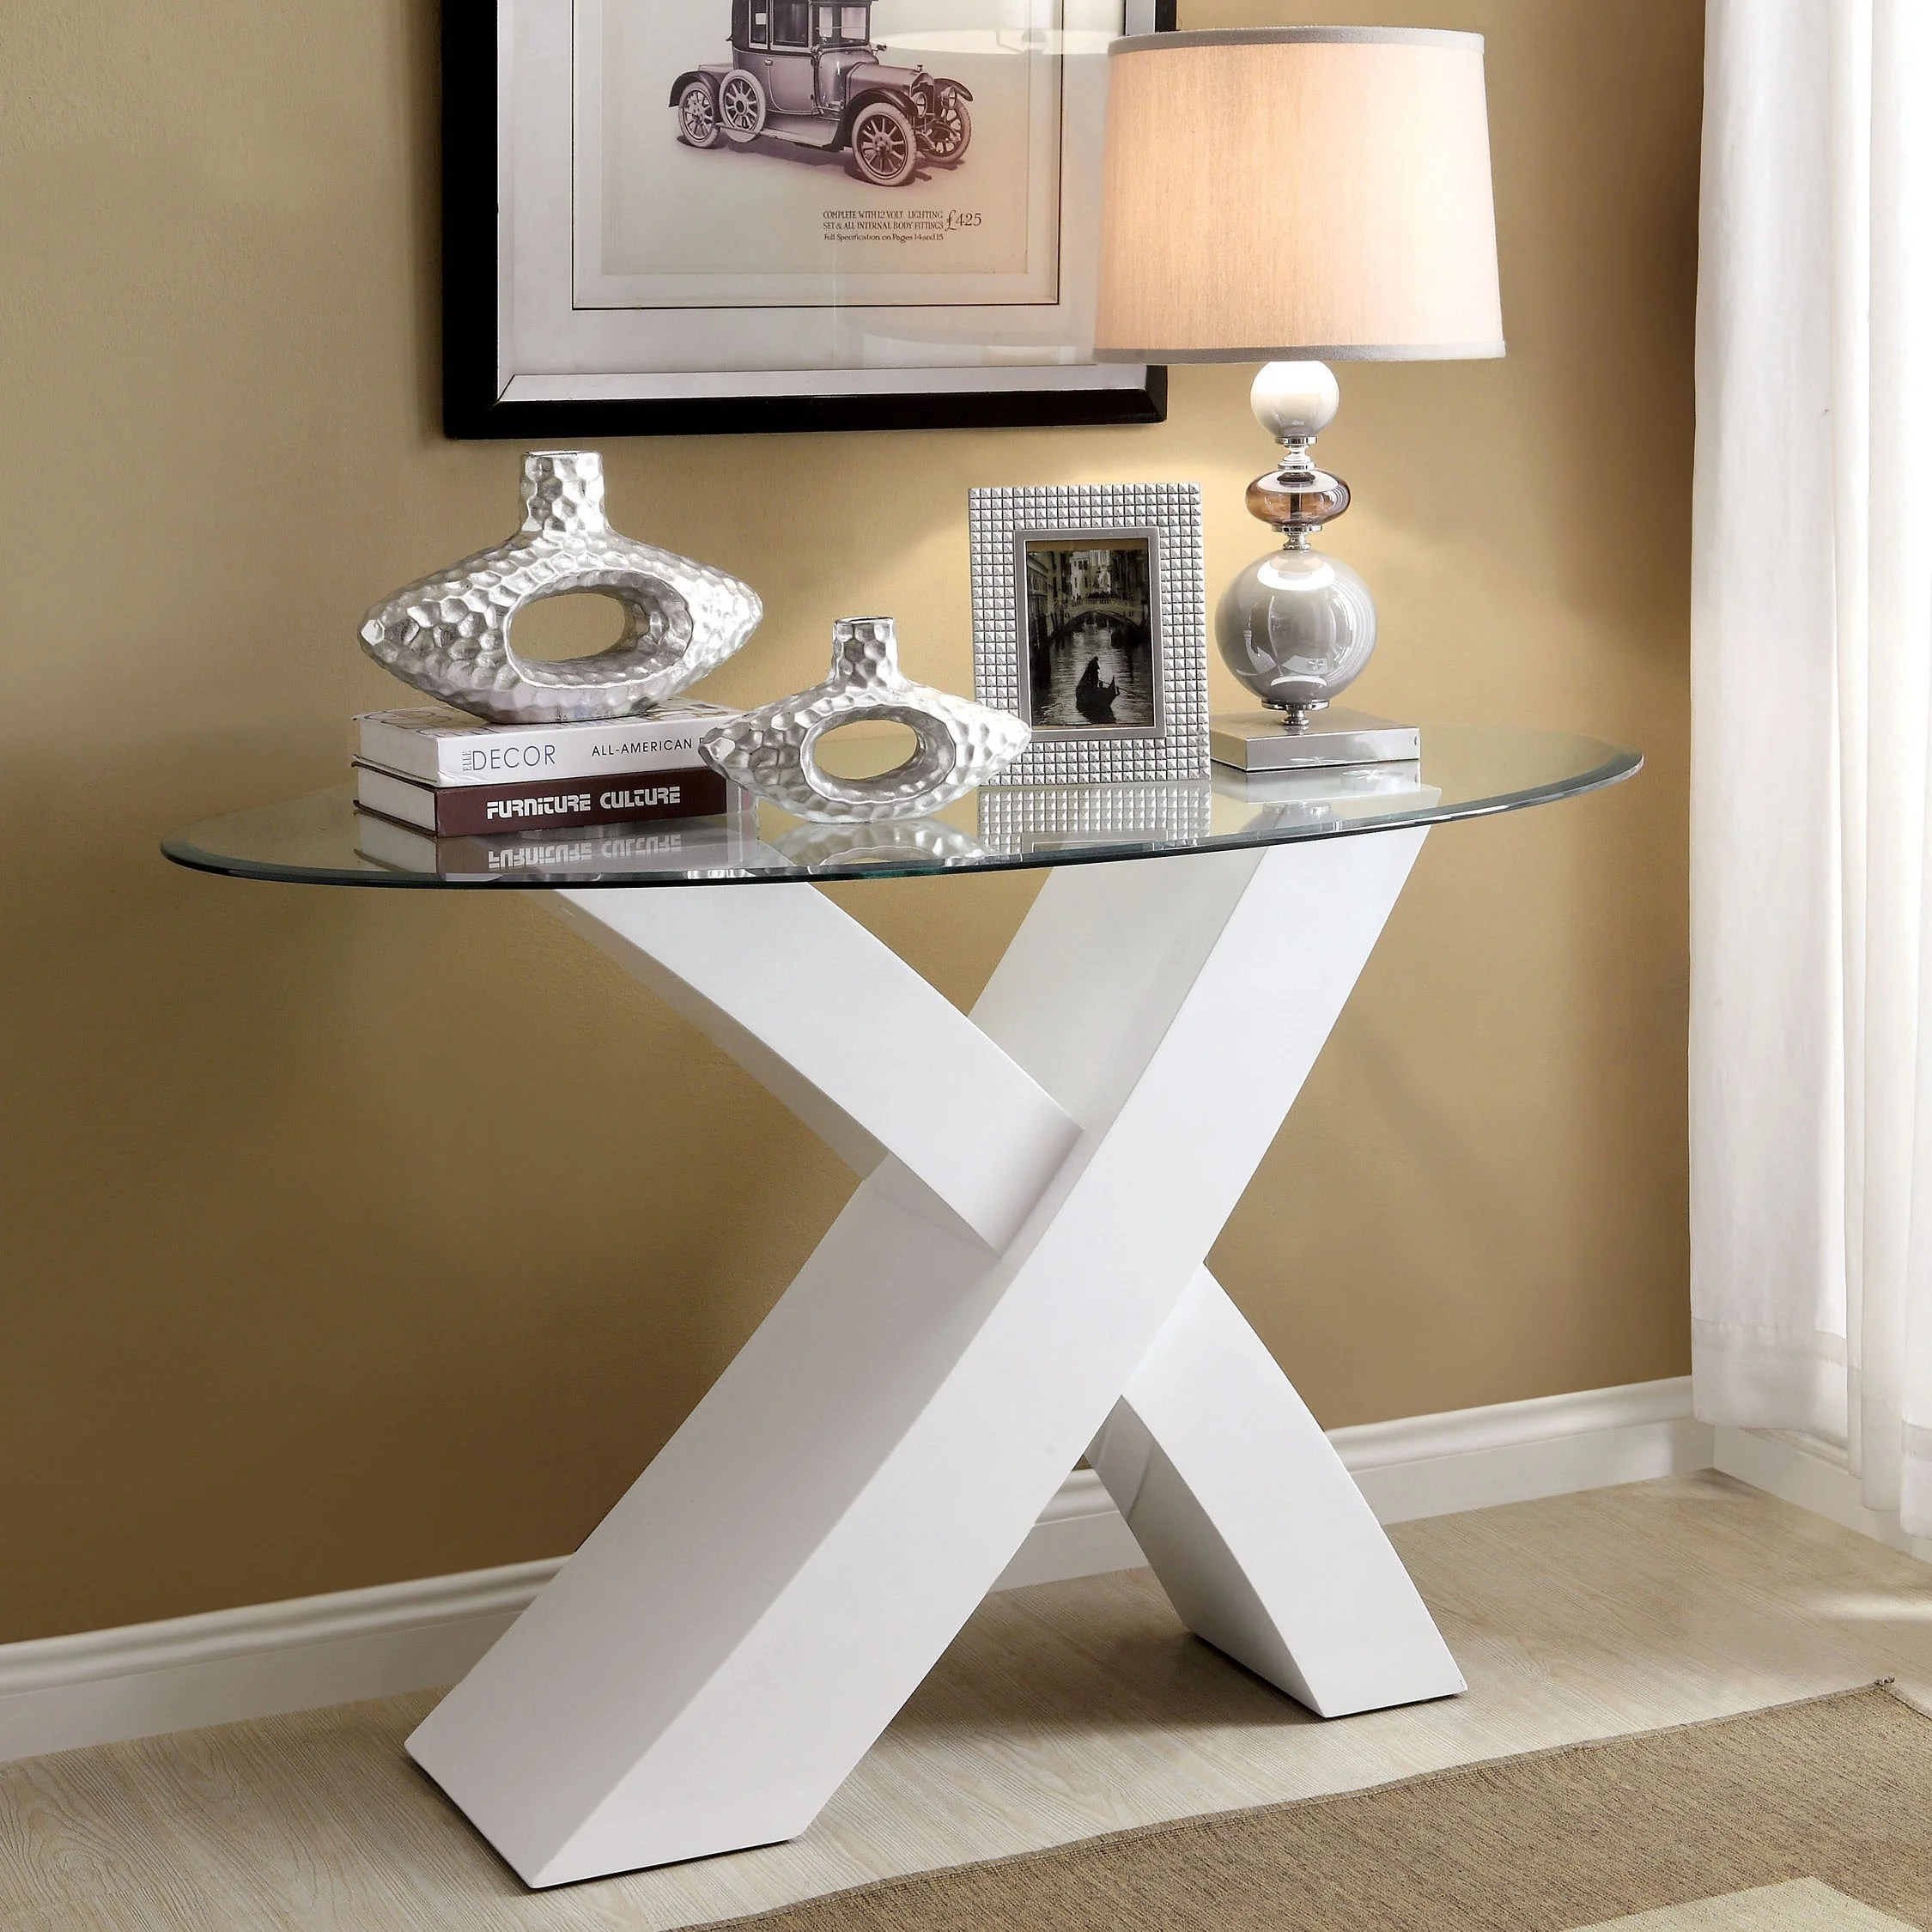 Glass Sofa Table Decor Furniture Of America Cass Glass Accent Sofa Table